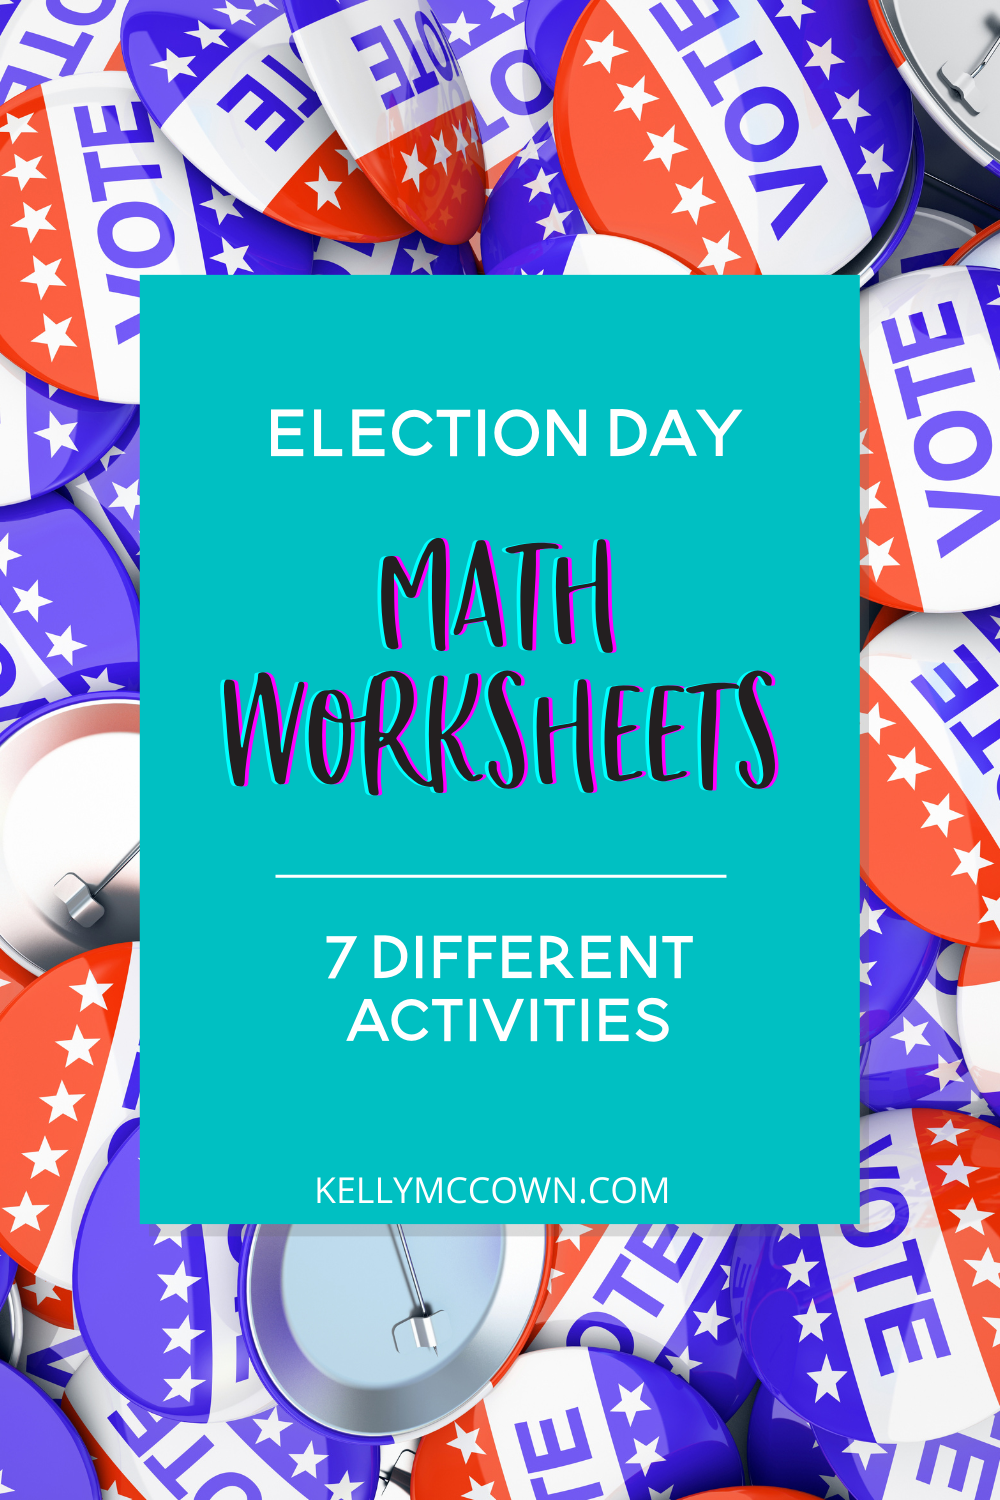 medium resolution of Kelly McCown: Election Day Math Worksheets for Middle School